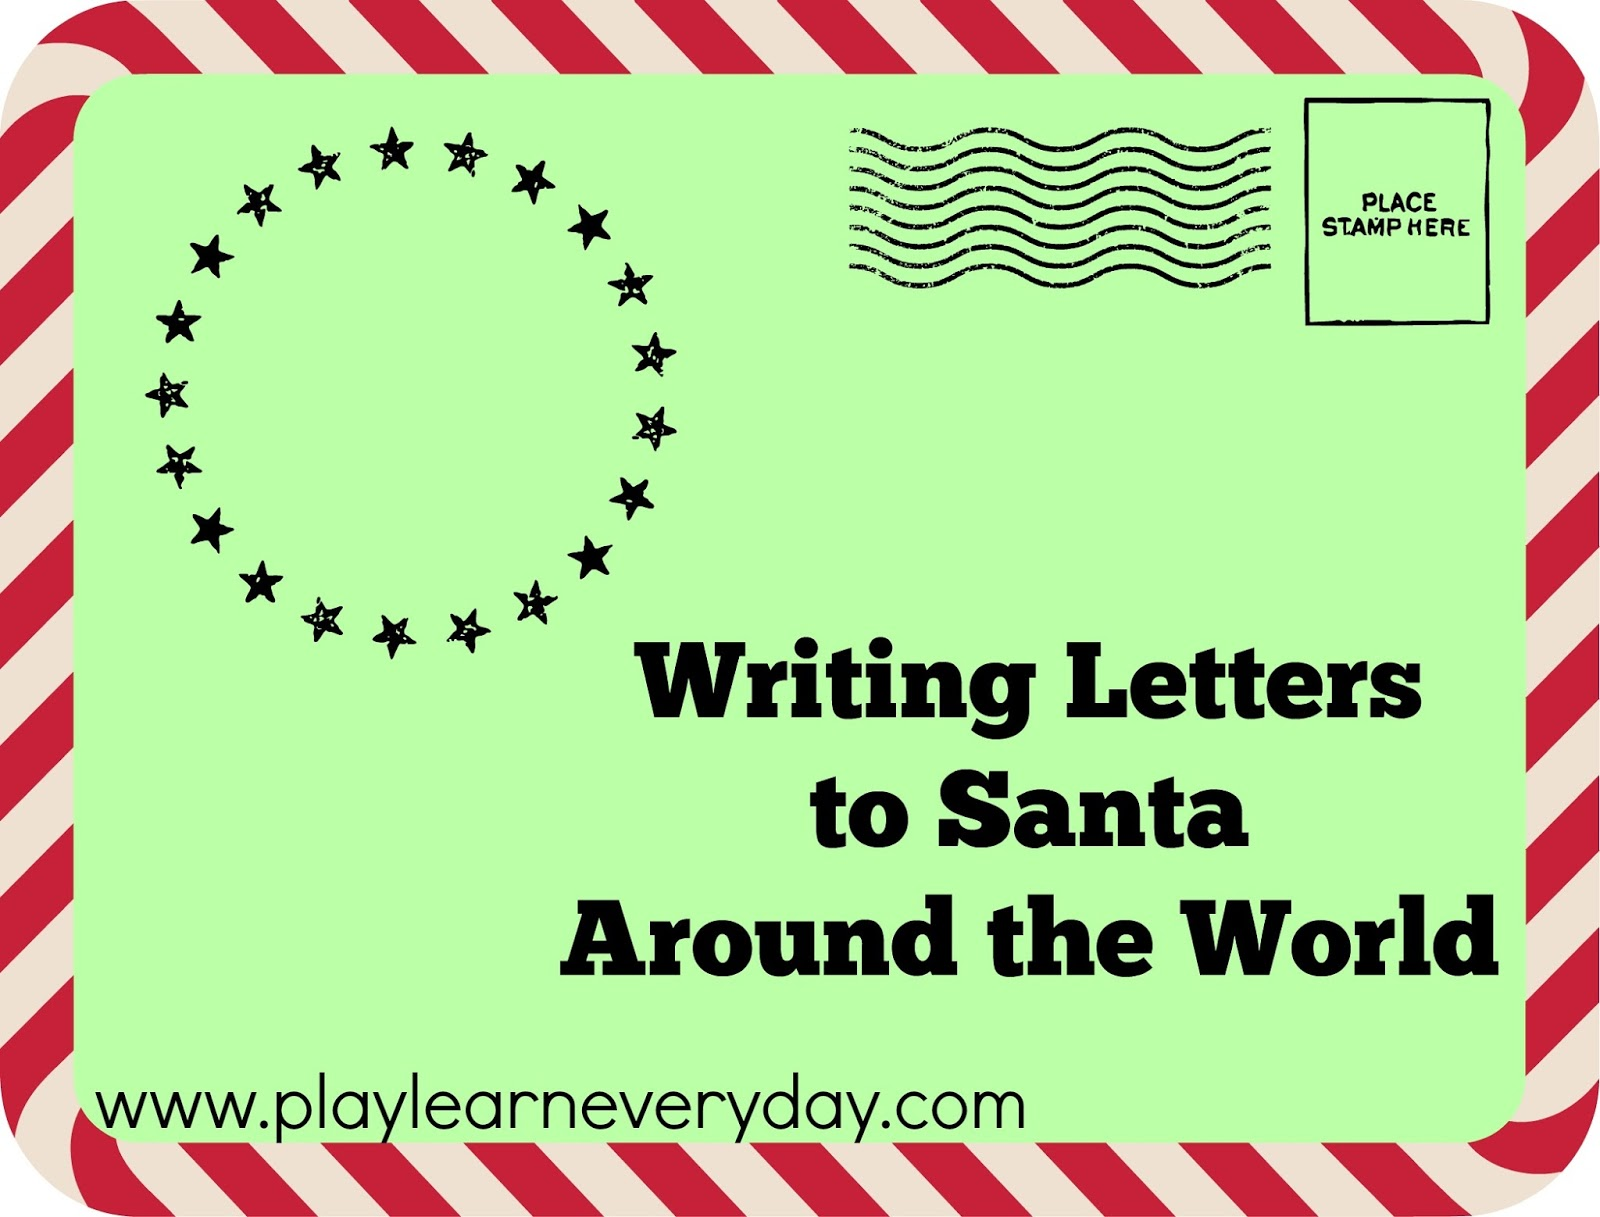 Writing letters to santa around the world play and learn every day so if youre in the uk you can write to father christmas by december 6th and send a self addressed stamped envelope to get a reply back from royal mail spiritdancerdesigns Images